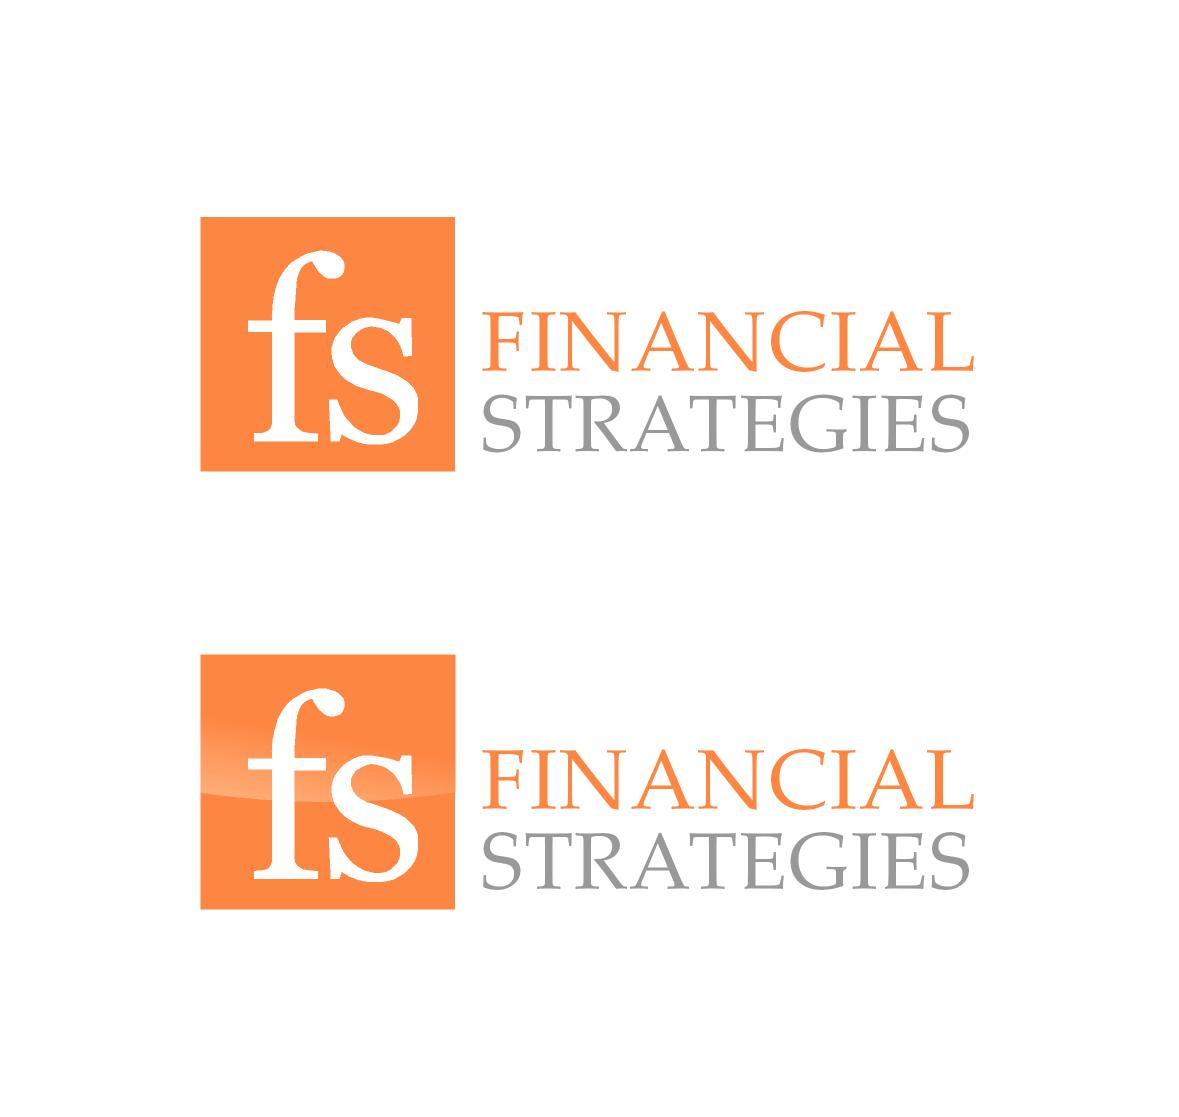 Logo Design by ZAYYADI AHMAD - Entry No. 72 in the Logo Design Contest Logo Design Needed for Exciting New Company FS Financial Strategies.